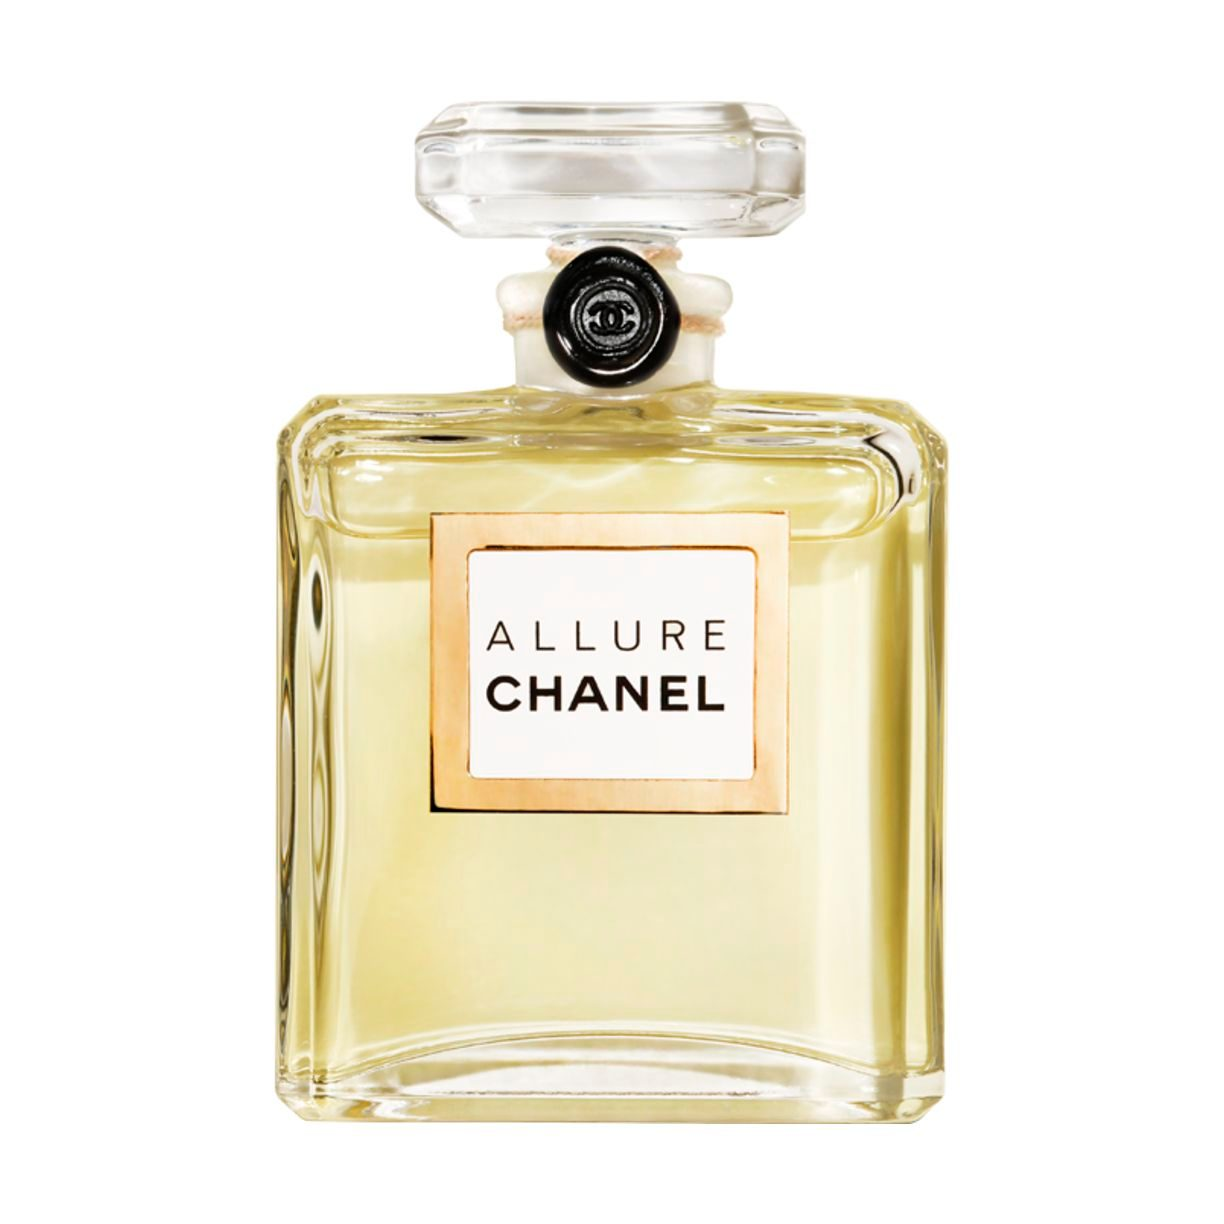 ALLURE PARFUM BOTTLE 7.5ML